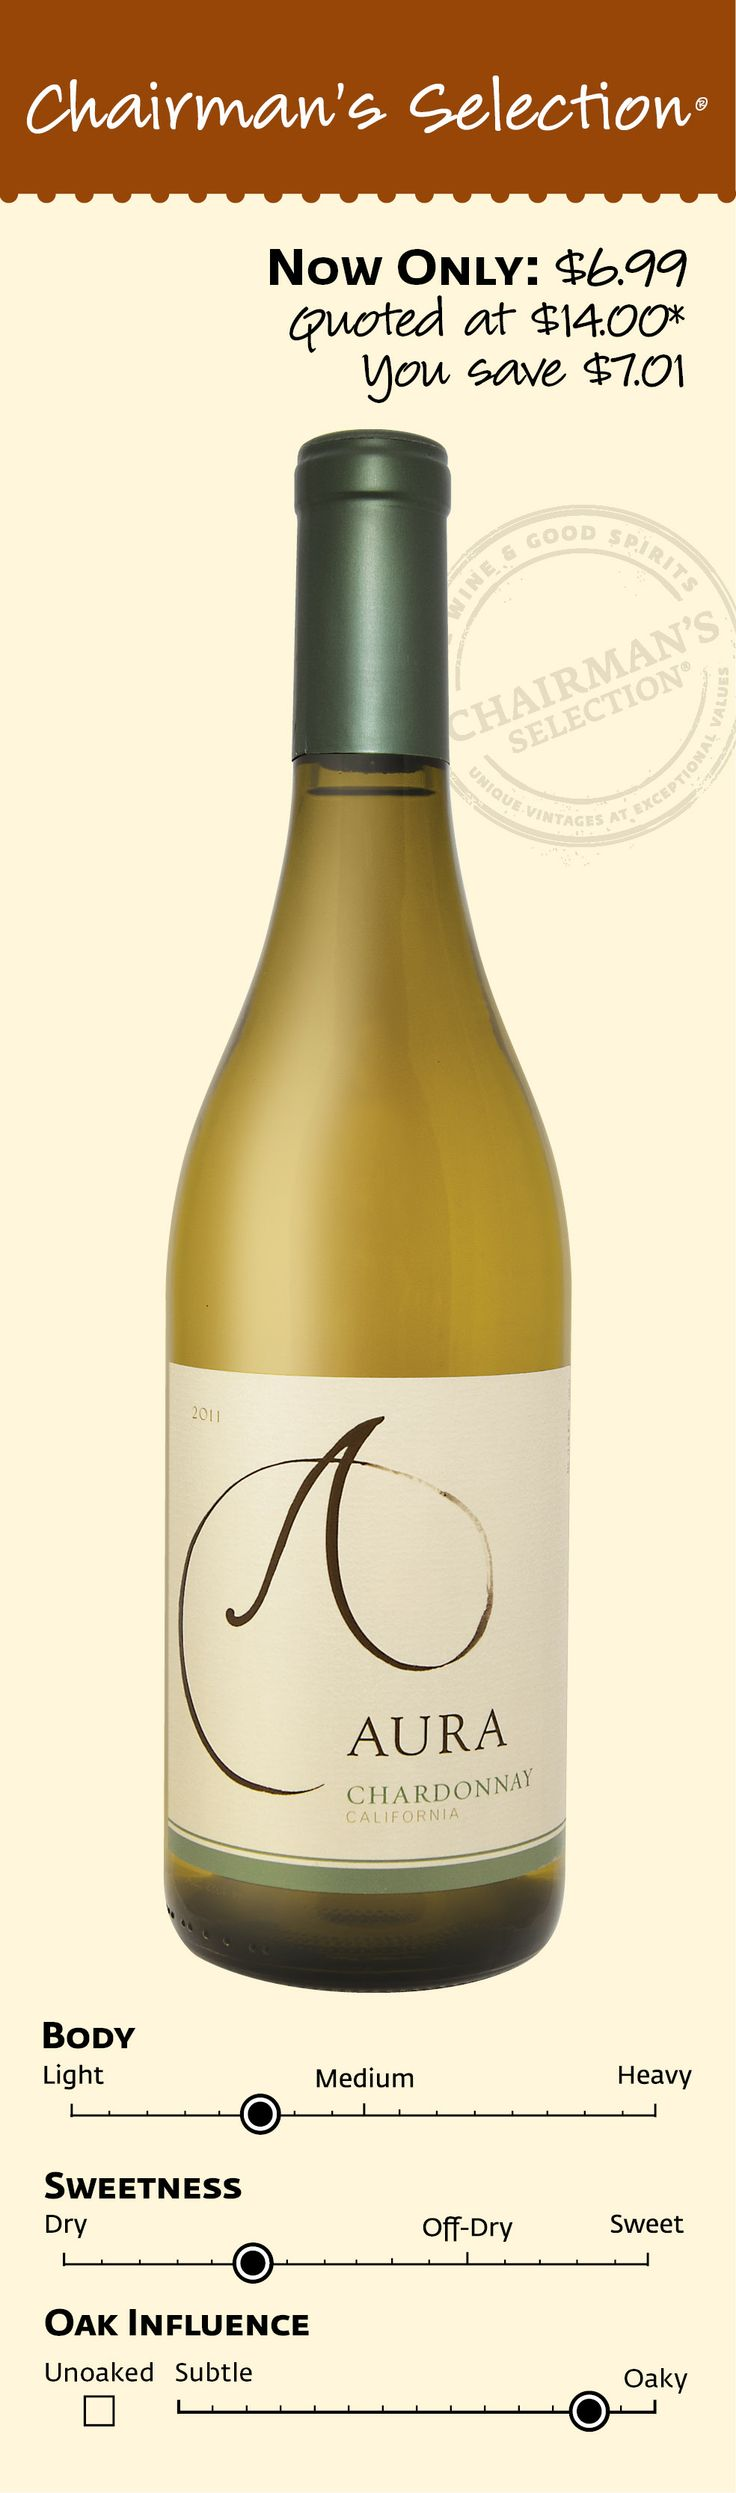 """Aura Chardonnay 2011: """"Is a uniquely smooth Chardonnay that trades dry and oaky for light and creamy, a perfectly unexpected twist on the ordinary. Aura is everything you never expected from a Chardonnay. A silky, toasty indulgence, Aura Chardonnay offers something more with its creamy flavors and velvety mouthfeel. Flavors of baked apple pie and sweet vanilla meld with hints of viscous caramel and rich velvety oak nuances for a luxurious Chardonnay wine."""" *Winemaker's notes. $6.99"""